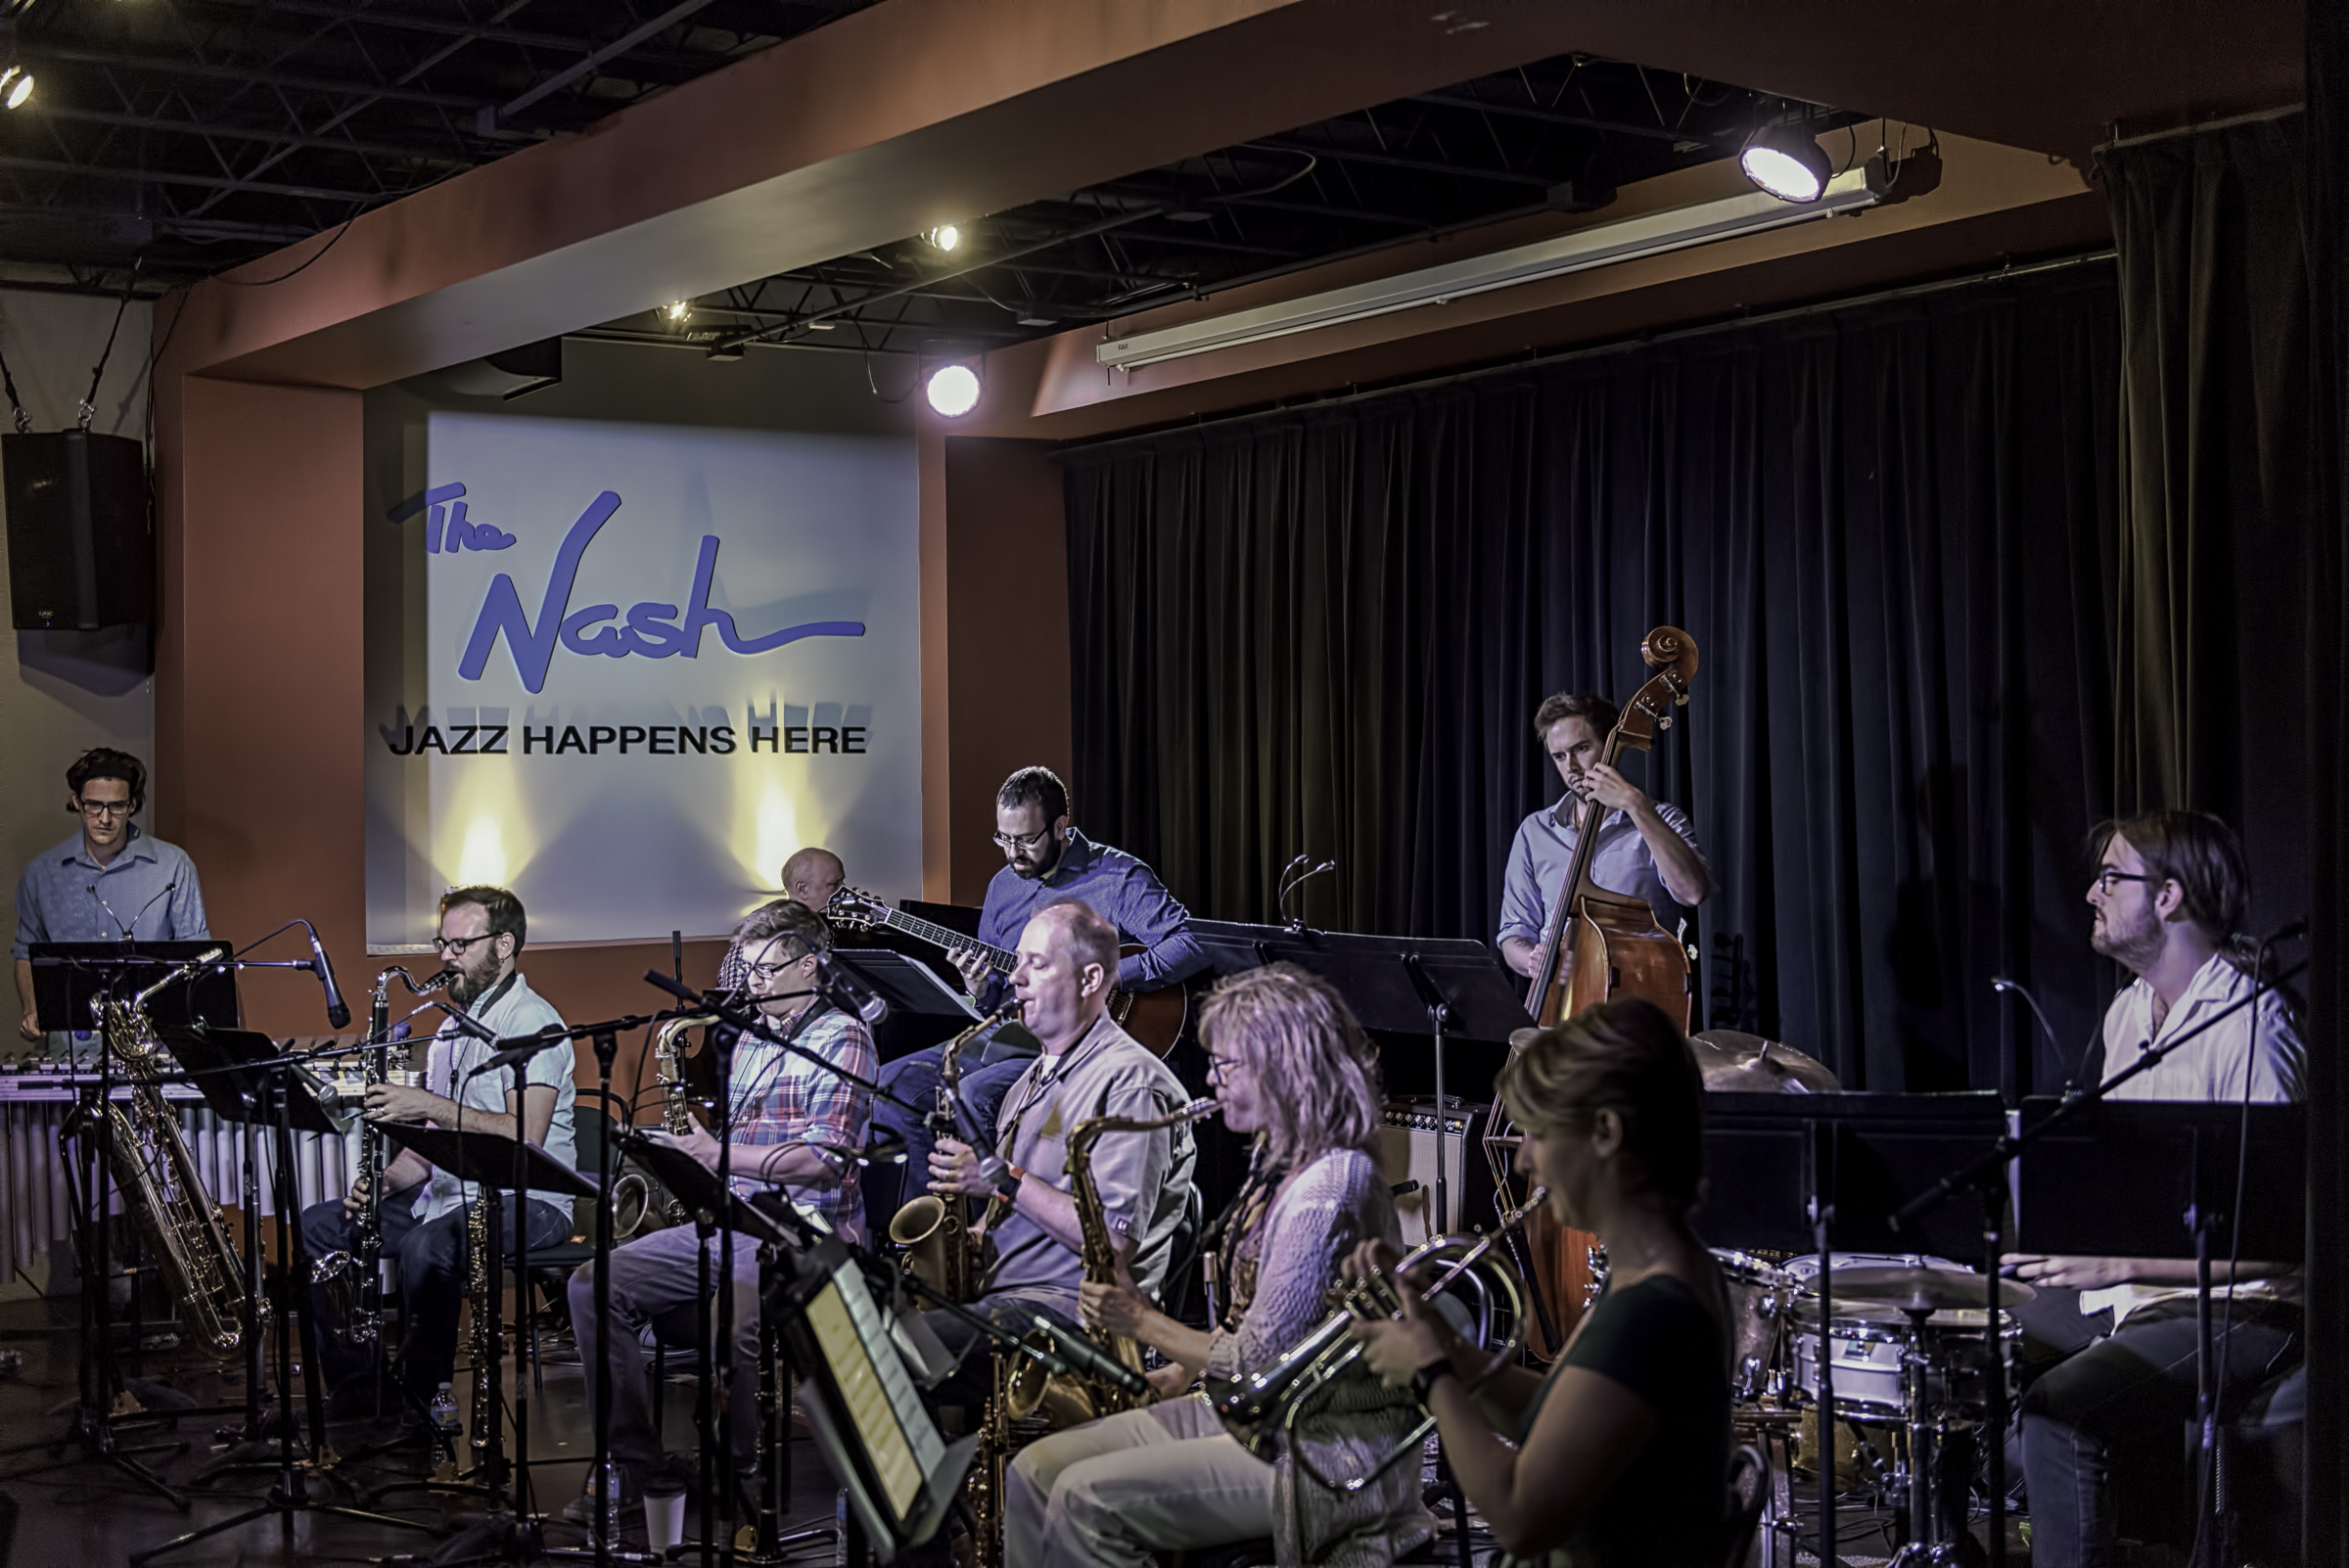 Matt Williams, Keith Kelly, Russell Schmidt, Jeff Libman, Eric Rasmussen, Ben Hedquist, Mary Petrich, Megan Dejarnett And Connor Sample With The Nash Composers Coalition At The Nash In Phoenix